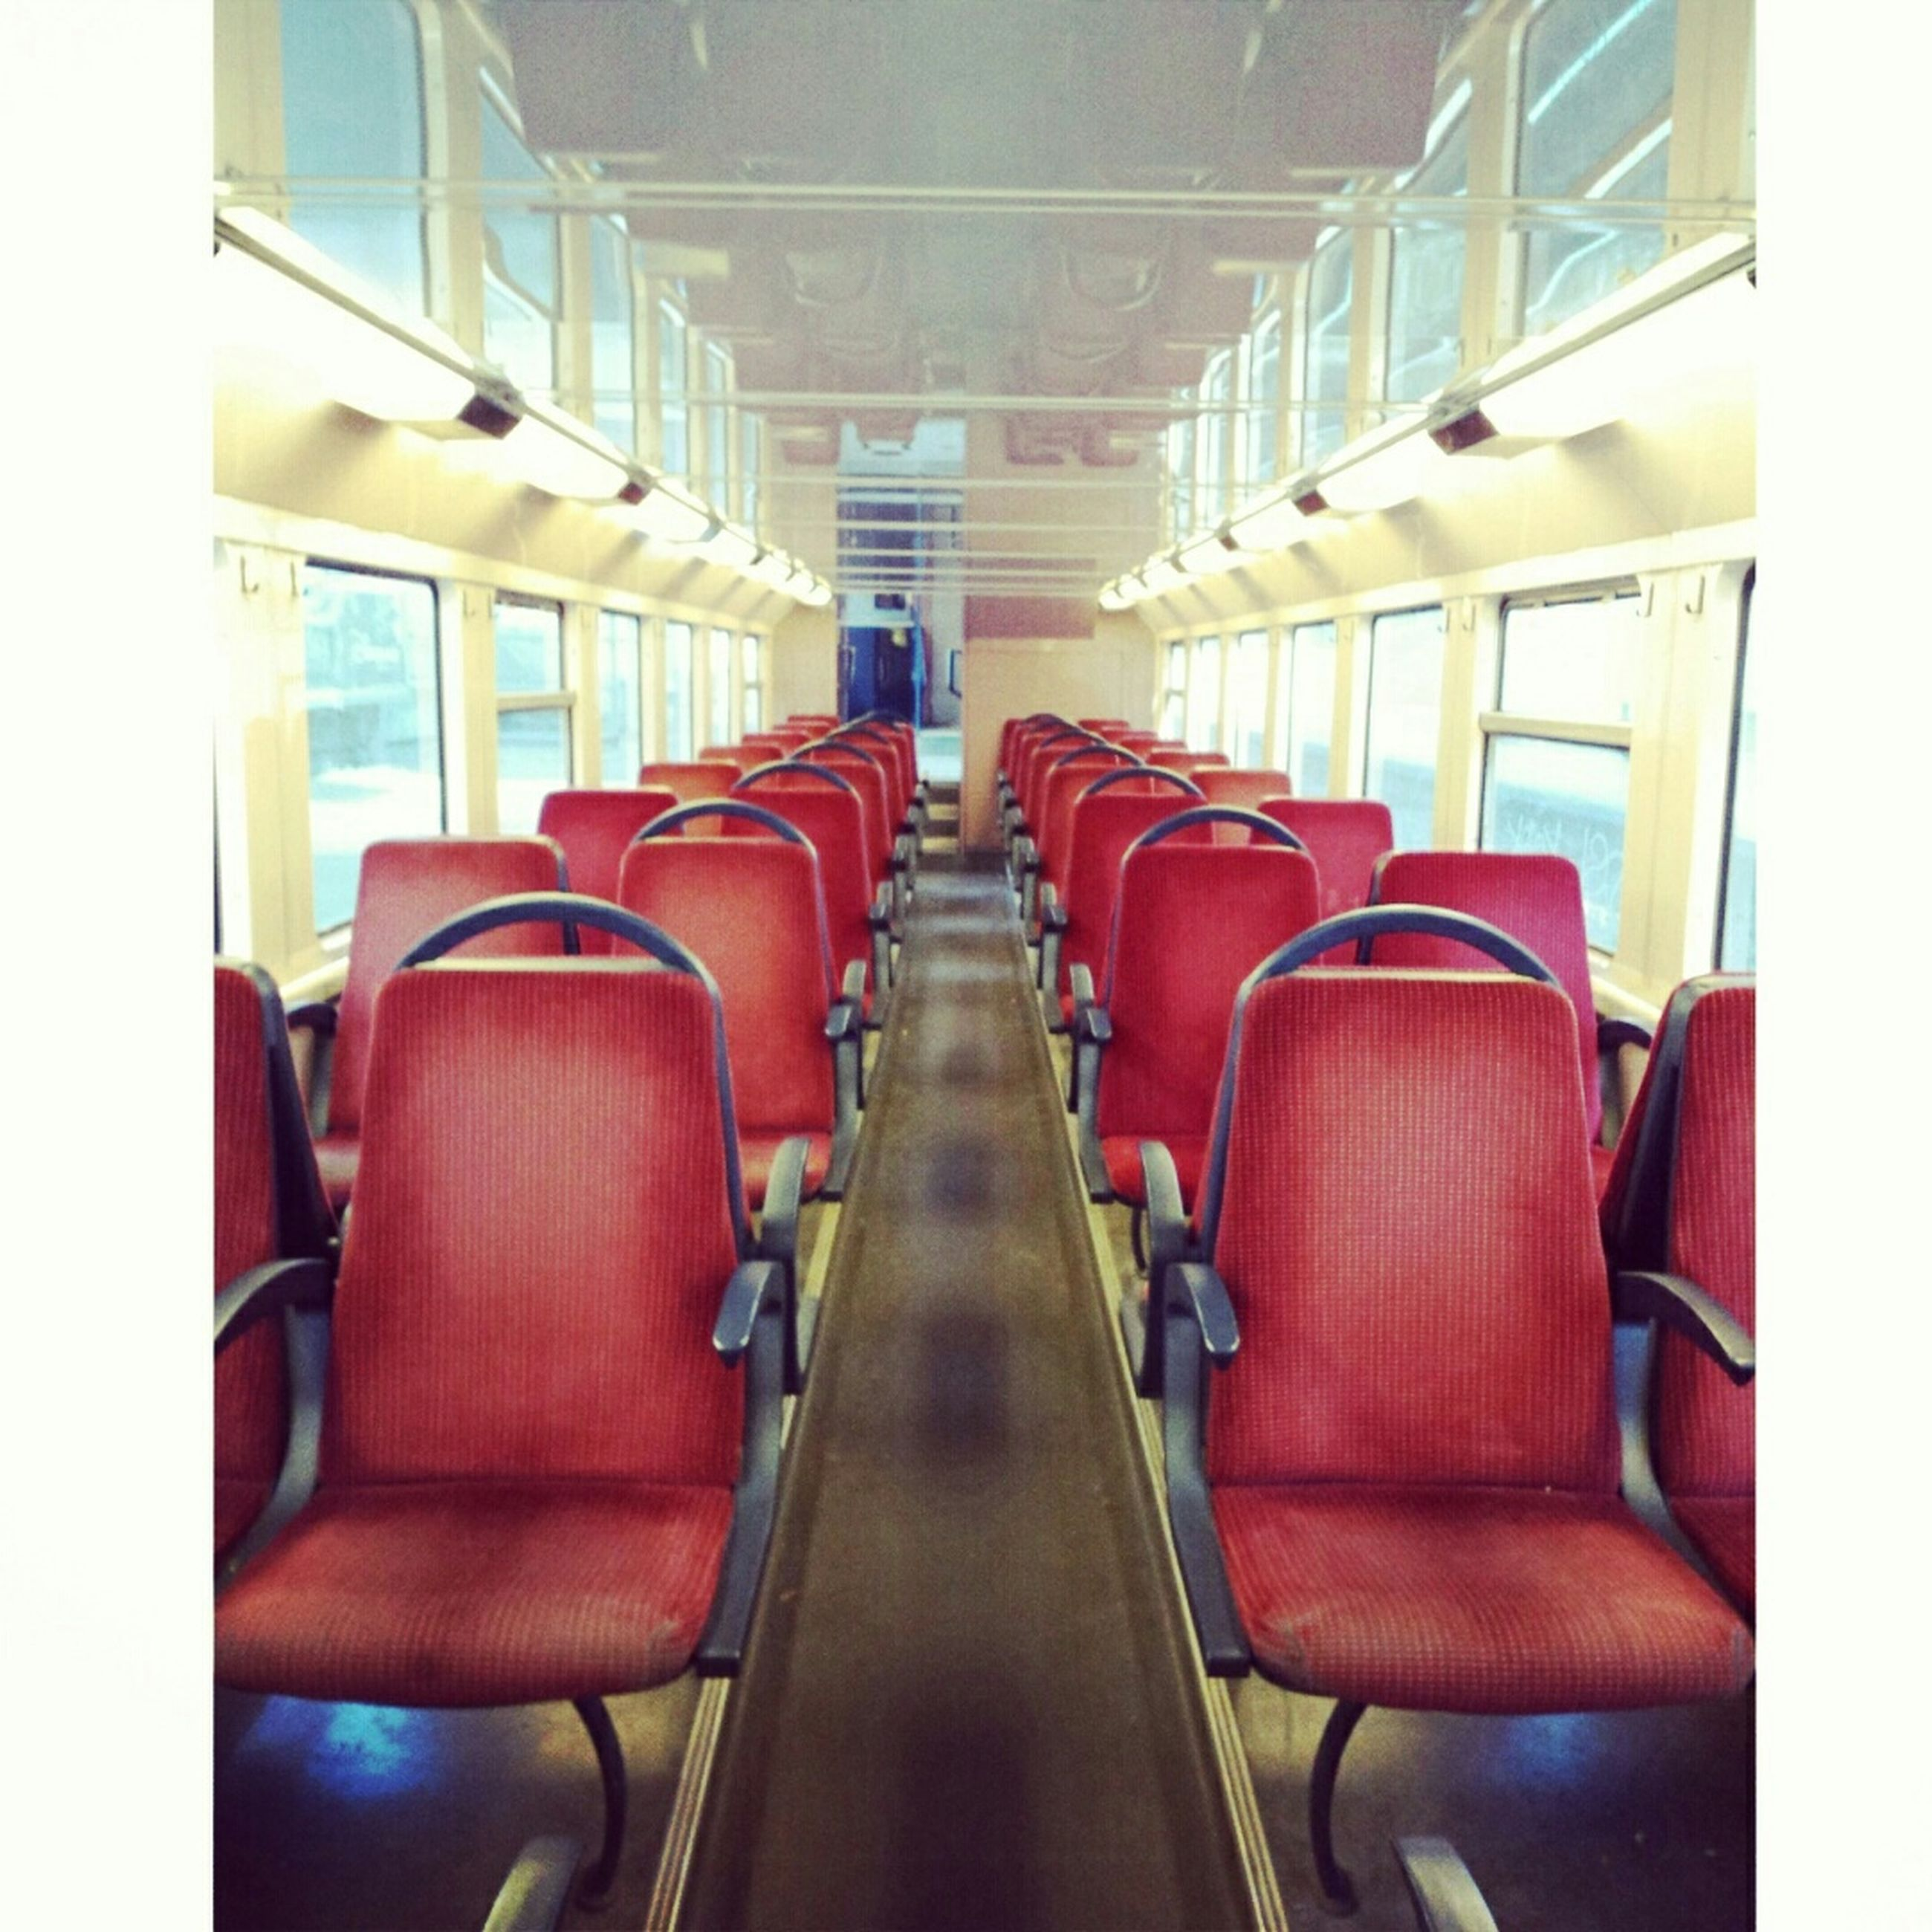 indoors, transportation, vehicle seat, mode of transport, empty, absence, chair, seat, vehicle interior, in a row, land vehicle, window, public transportation, travel, bus, train - vehicle, no people, train, day, interior